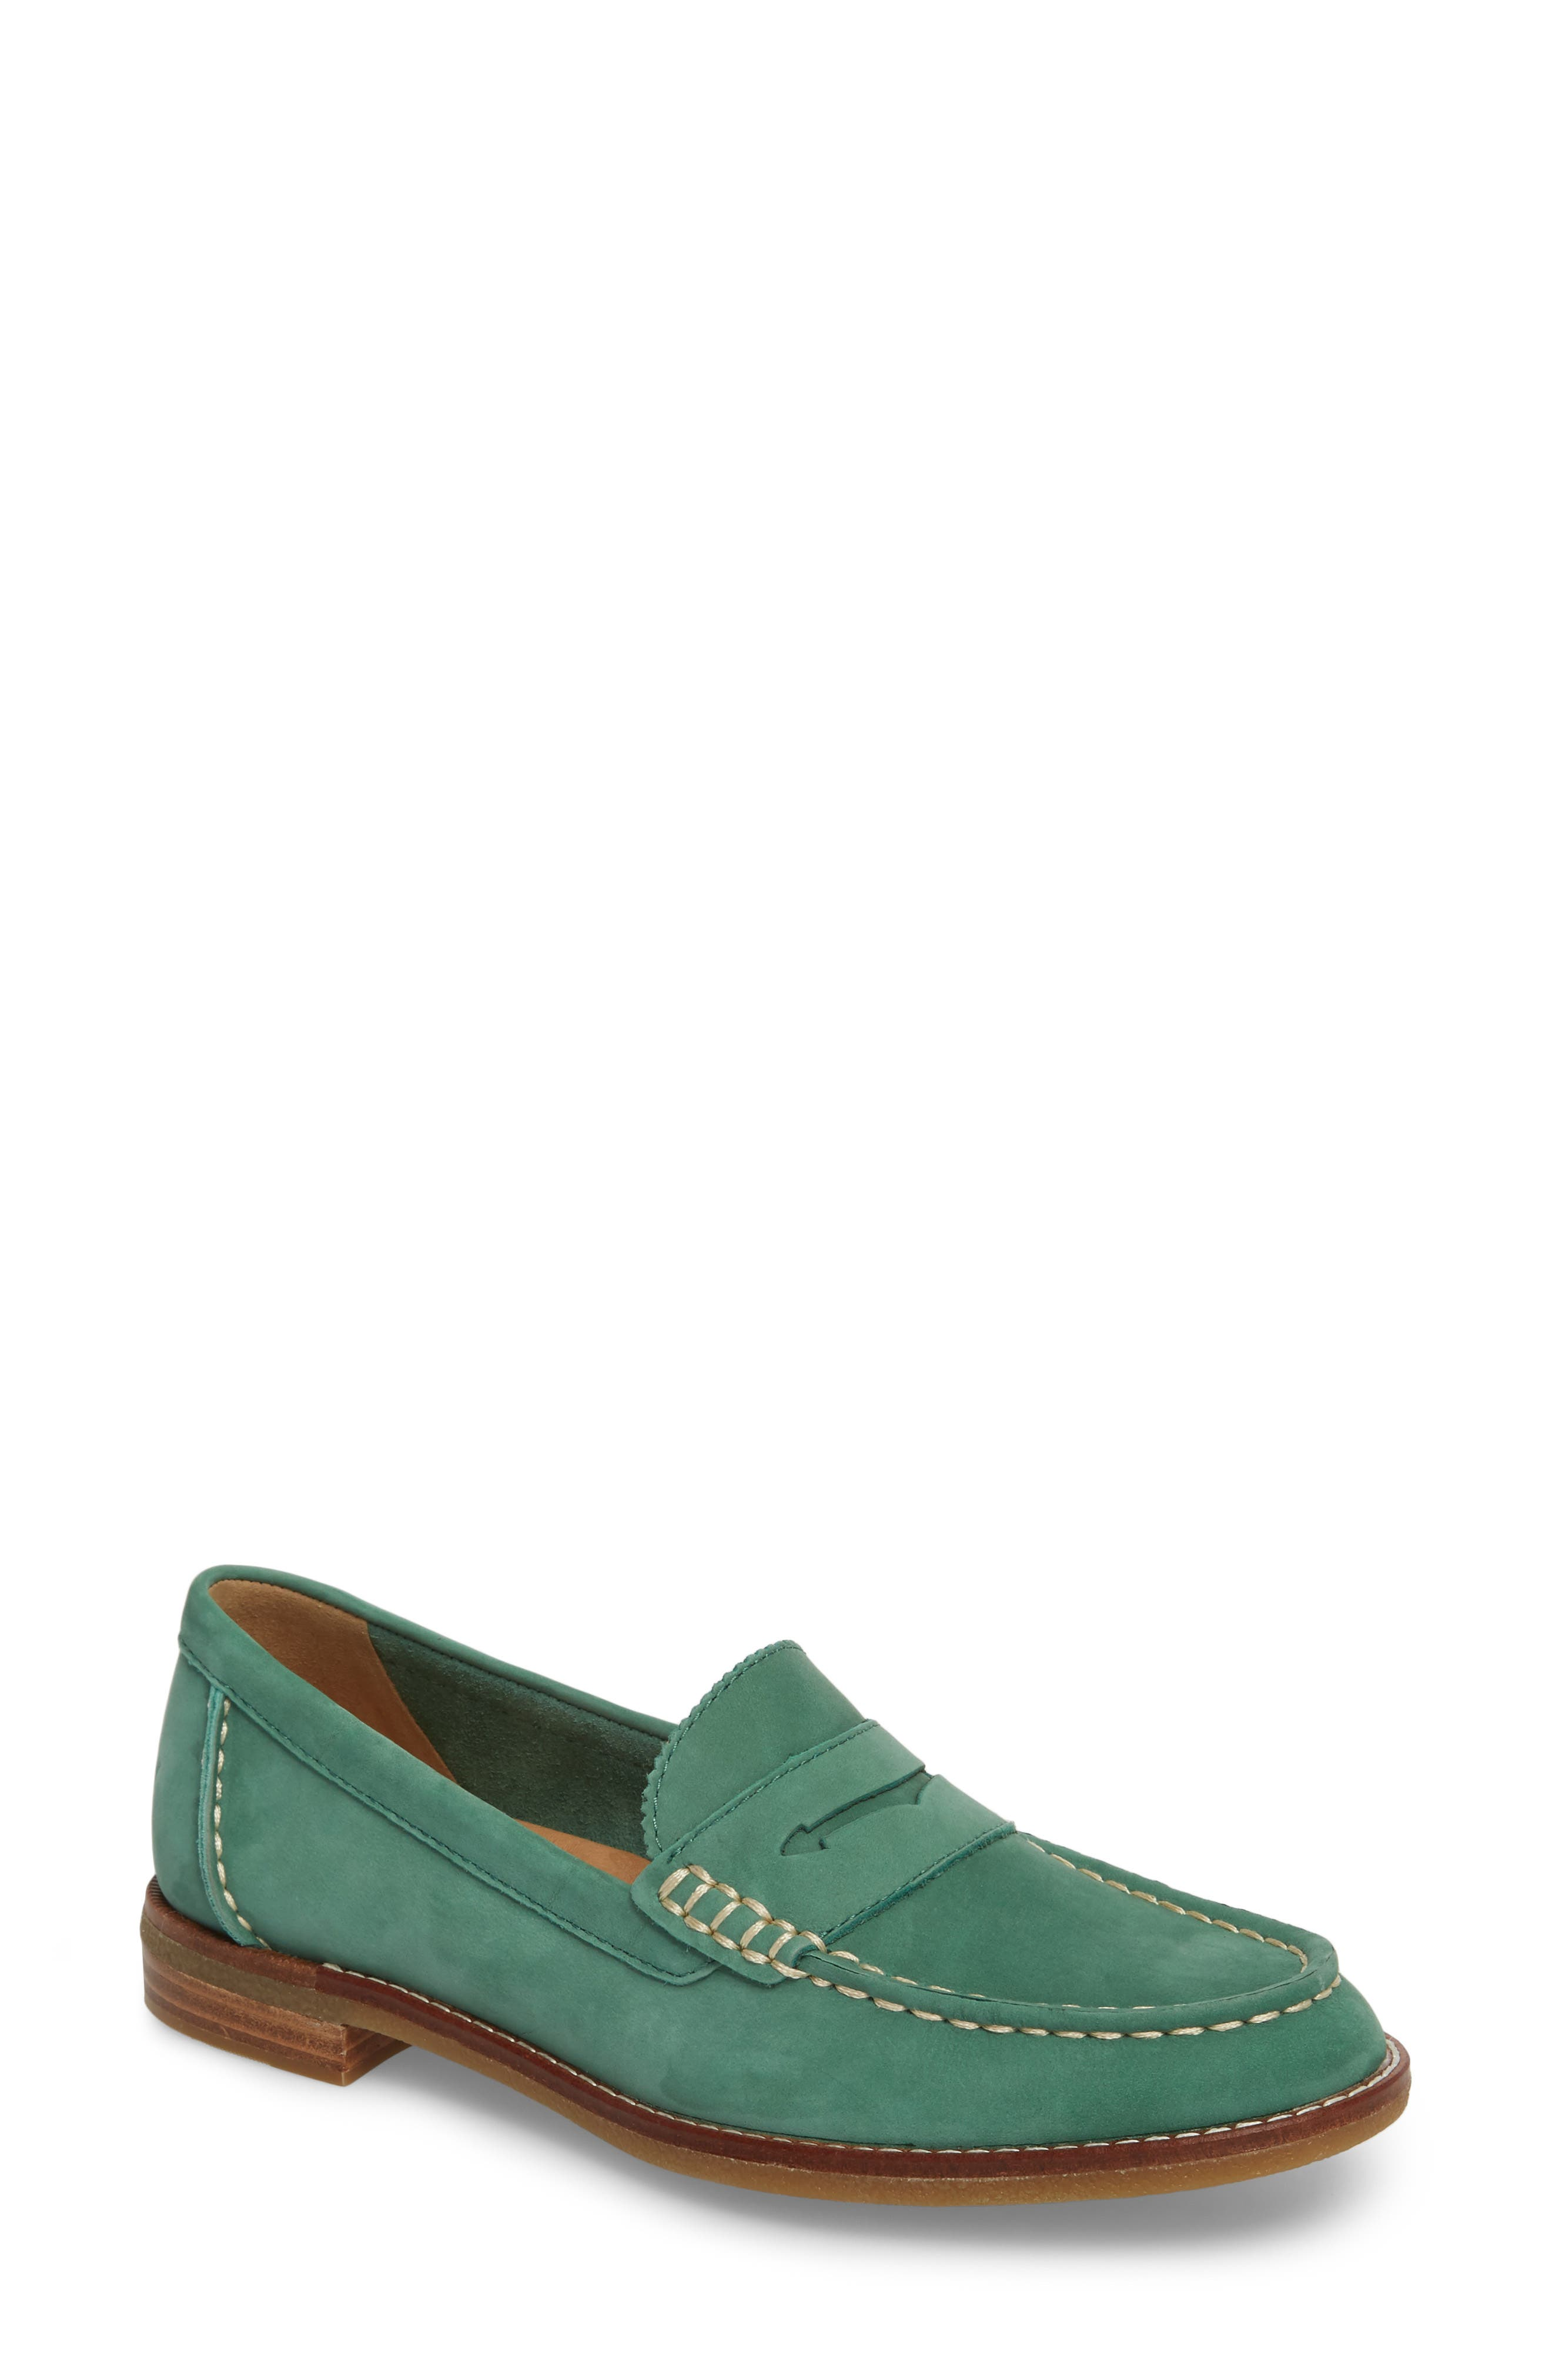 Seaport Penny Loafer,                         Main,                         color, Green Leather